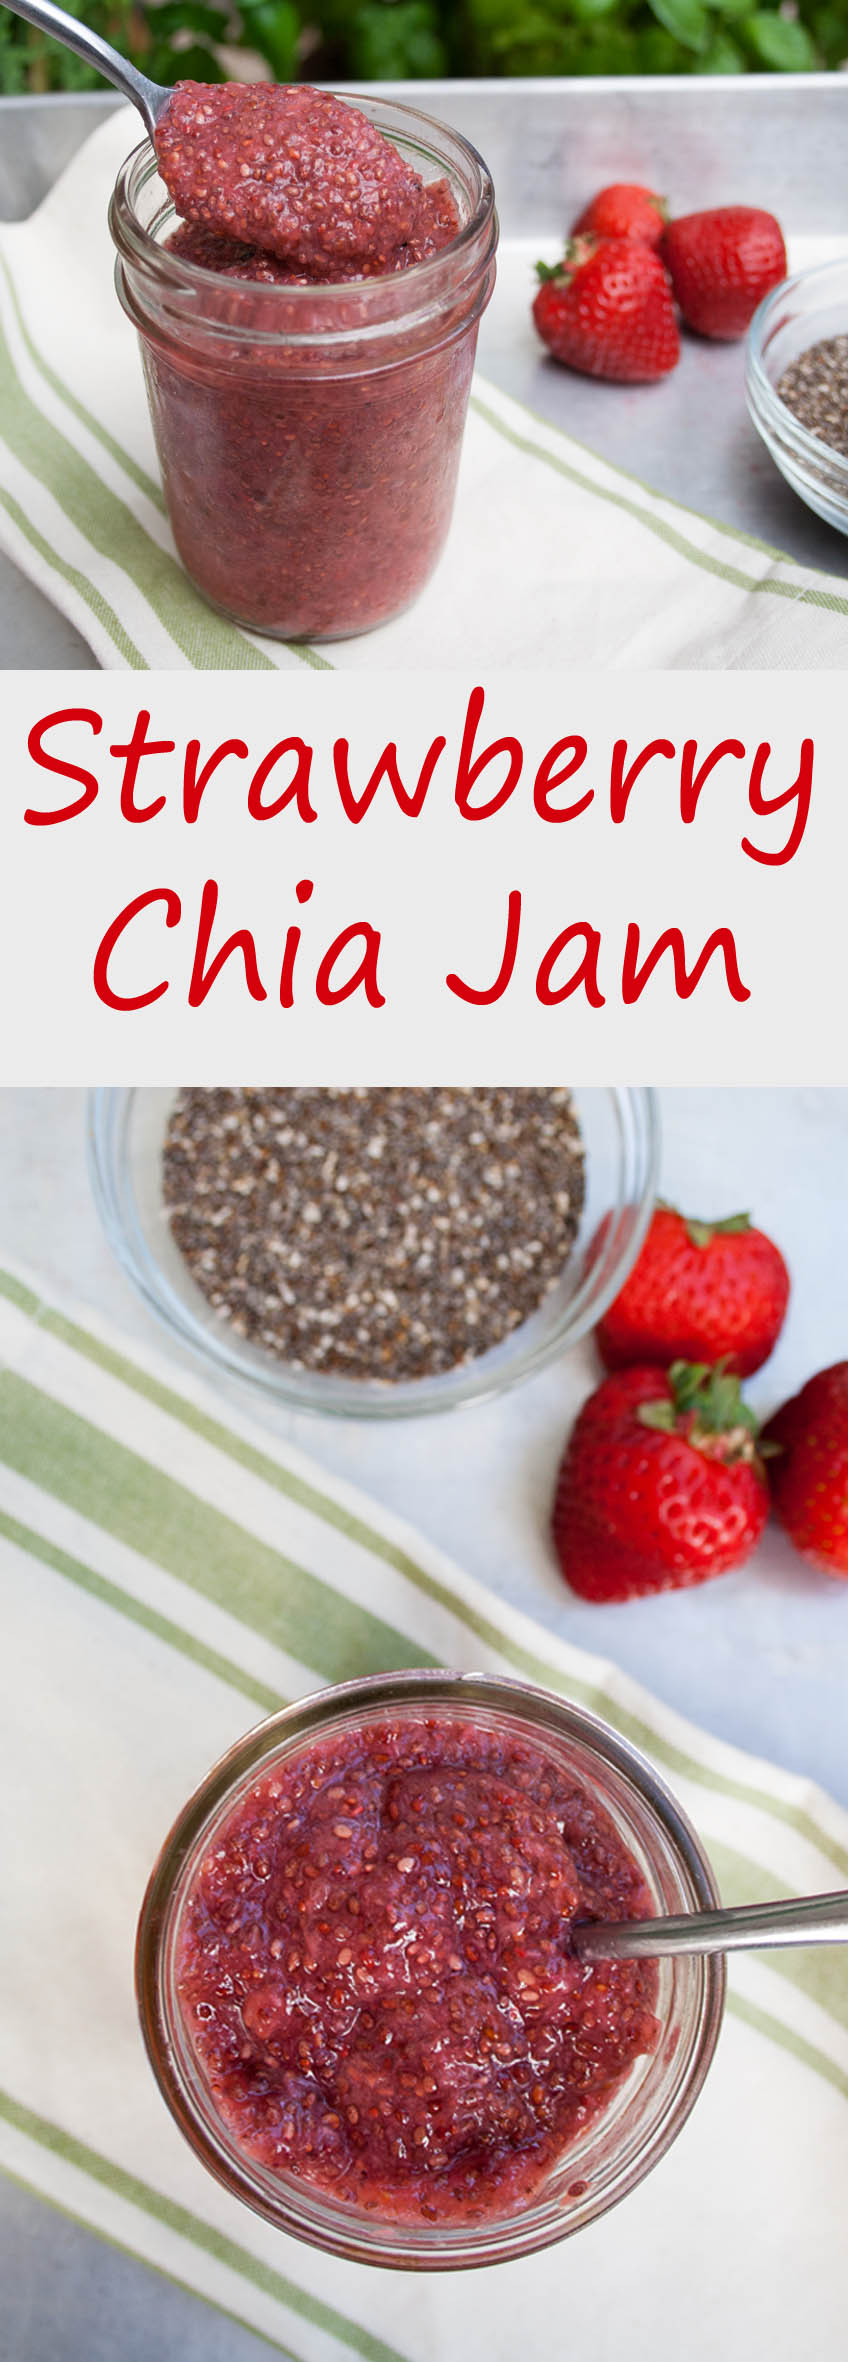 Strawberry Chia Jam (vegan, gluten free) - This easy homemade jam has only three ingredients. It is low carb and sweetened with only a little agave syrup.